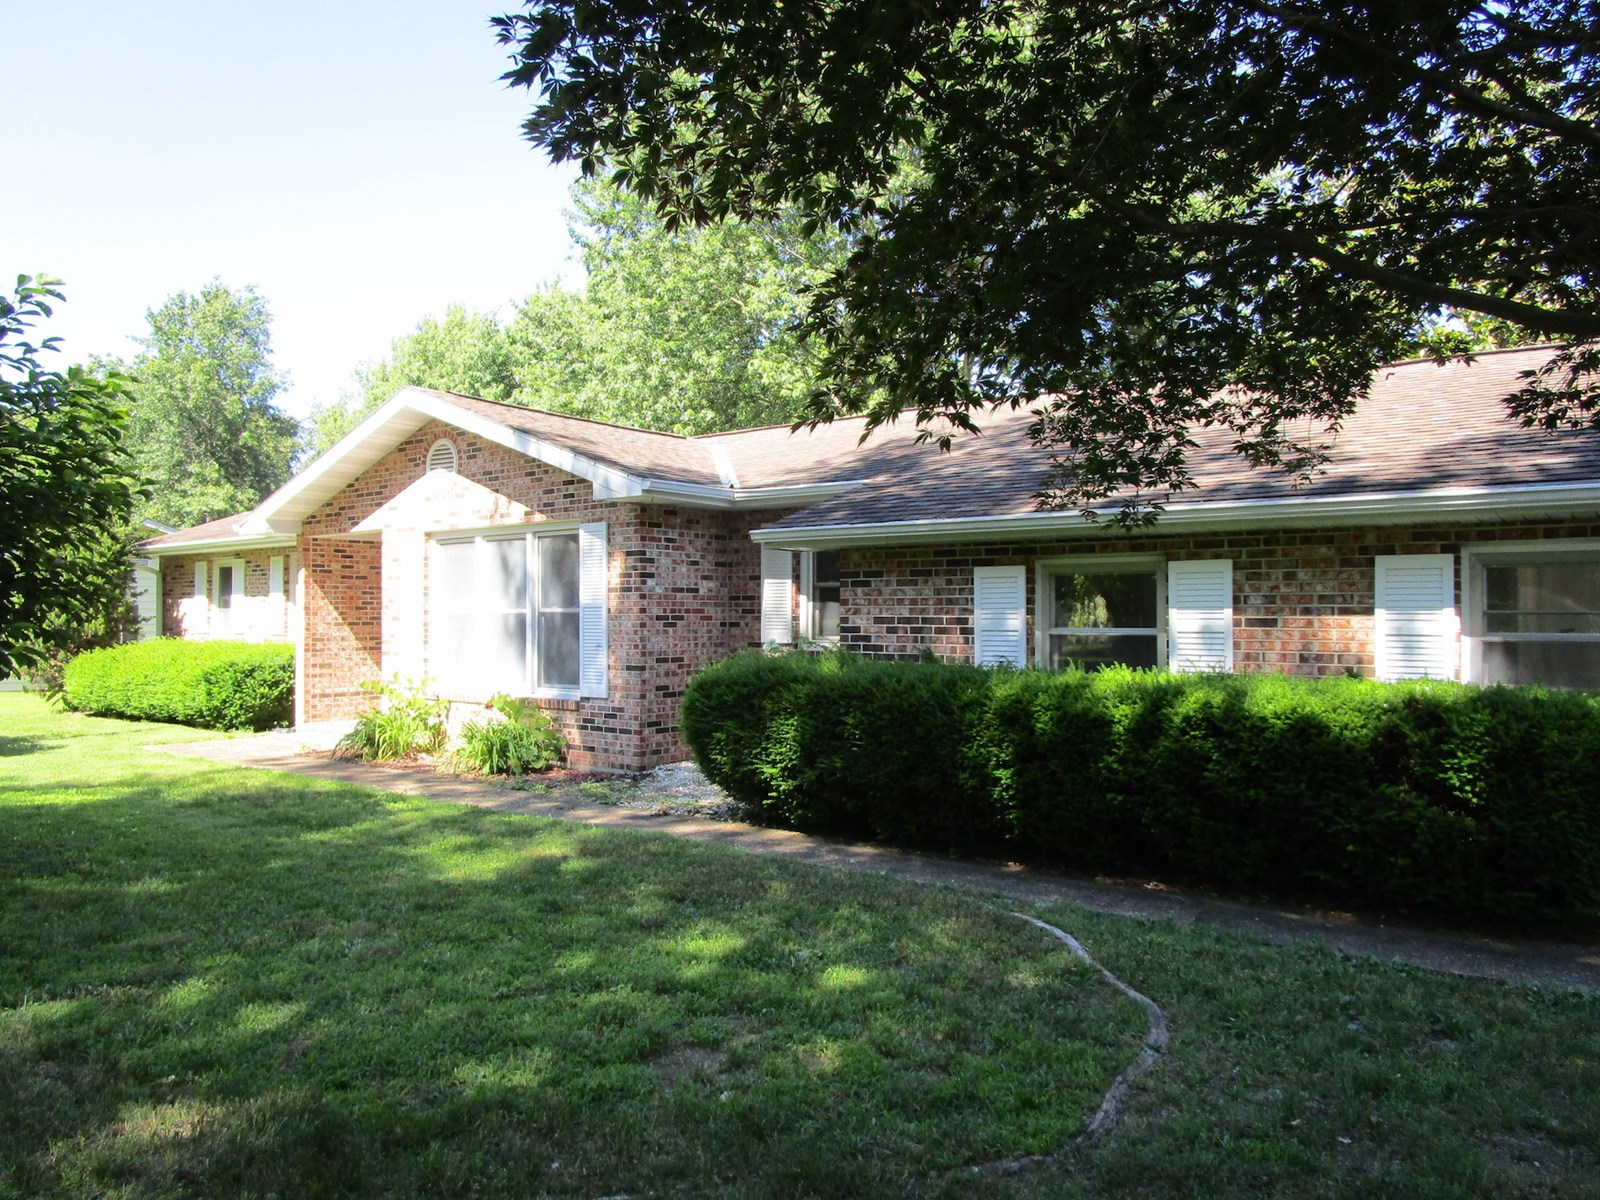 Brick Home in Town - Move In Ready!  South Central Missouri